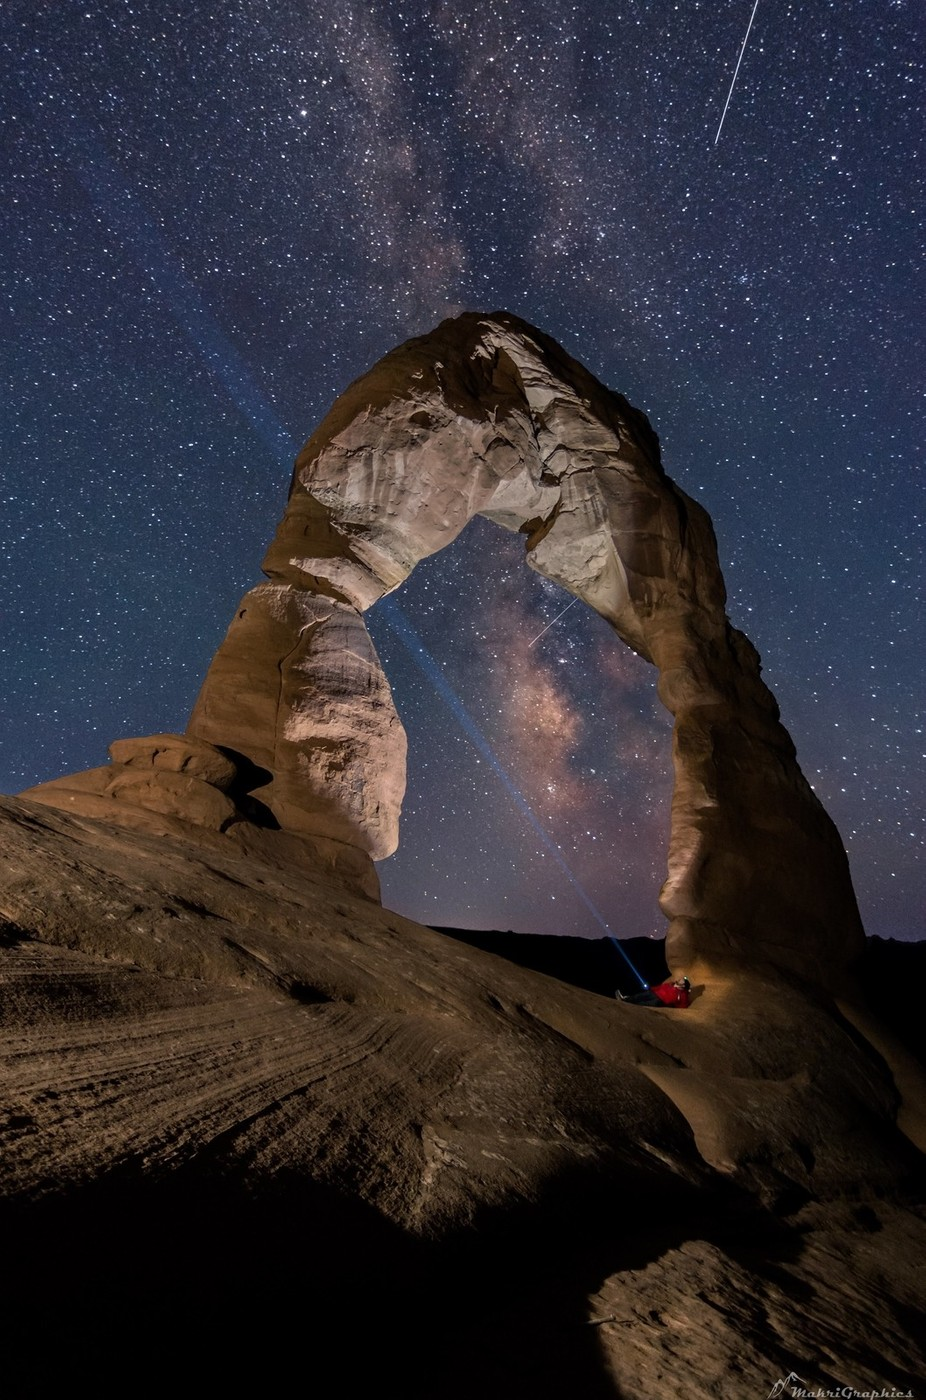 Signaling the Aliens from Delicate Arch by MakriGraphics - Social Exposure Photo Contest Vol 12